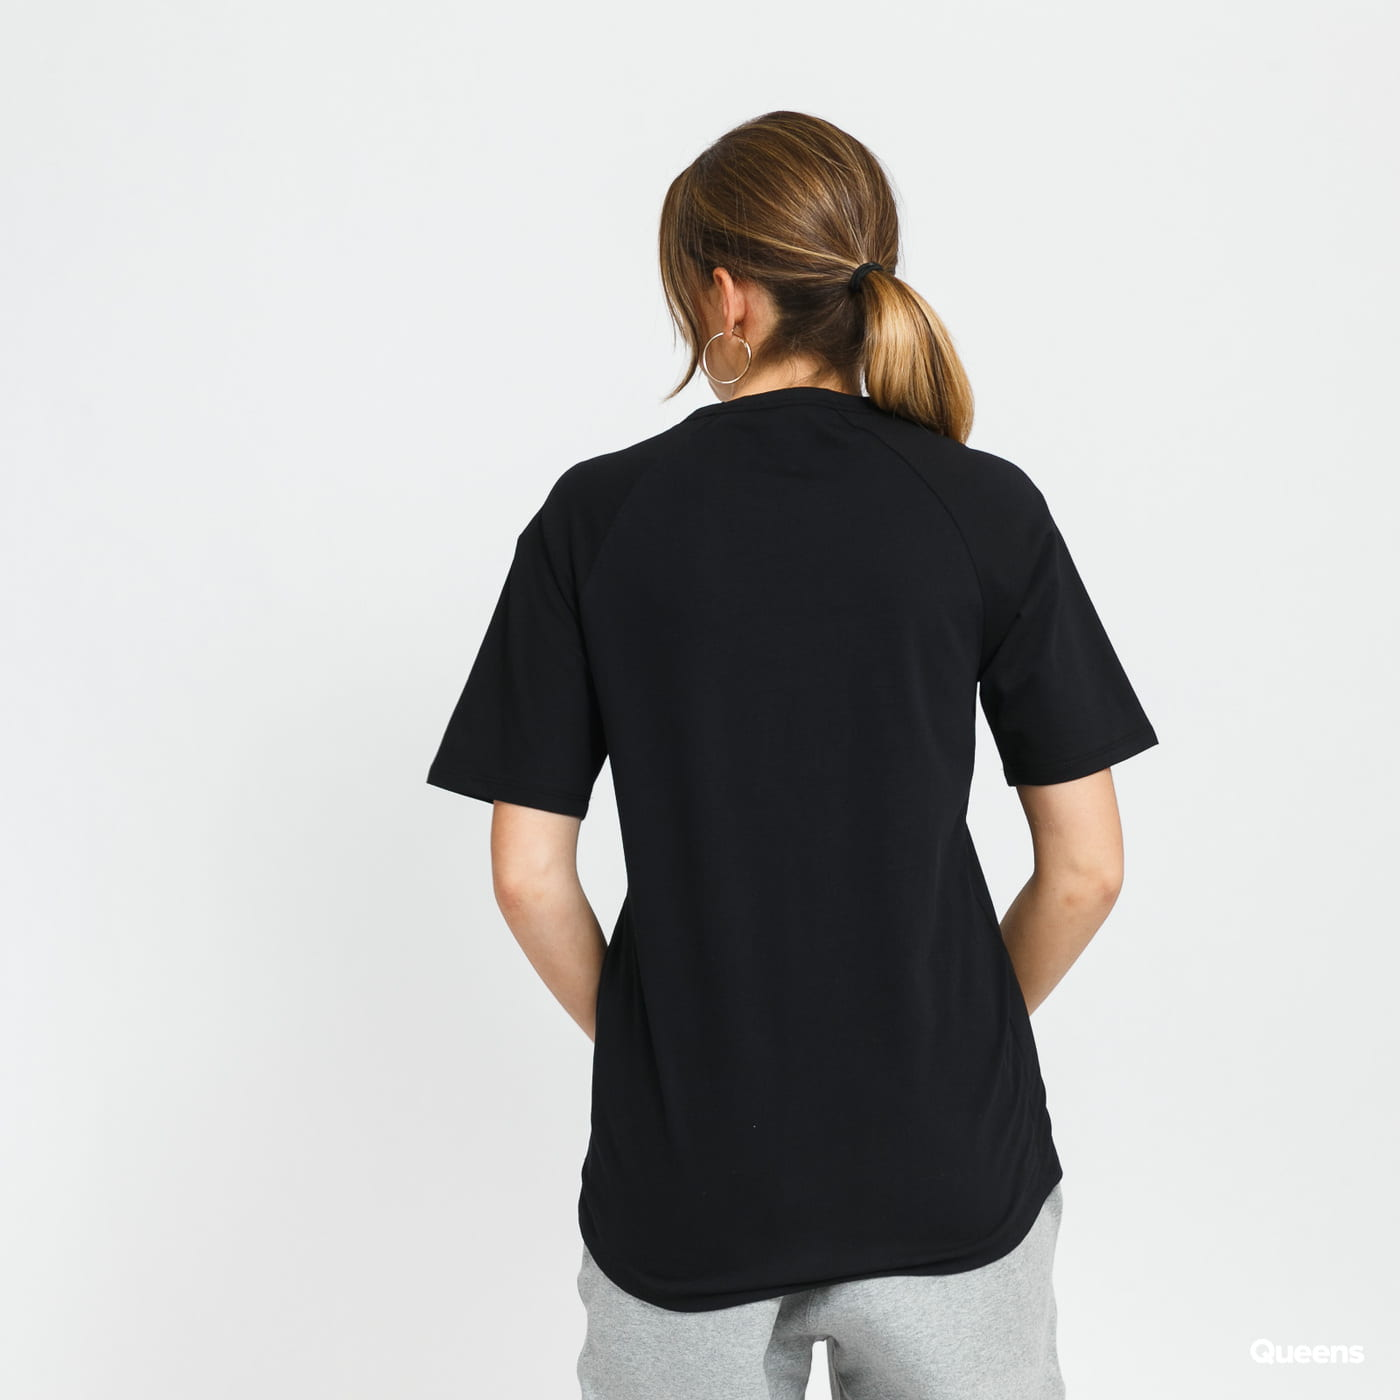 Carhartt WIP W' S/S Misfortune Tee black stone washed no length